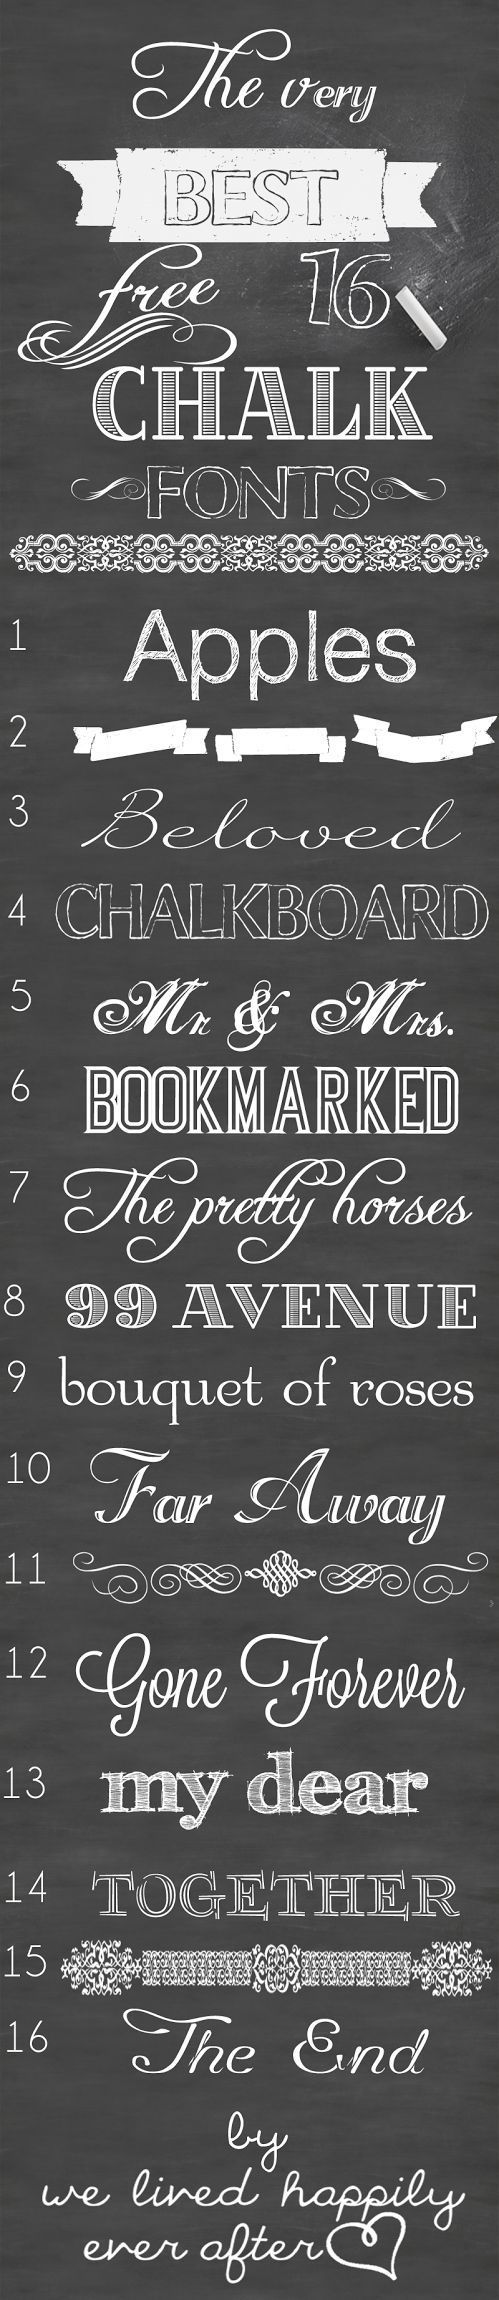 We Lived Happily Ever After: The Very Best 16 Free Chalk Fonts.